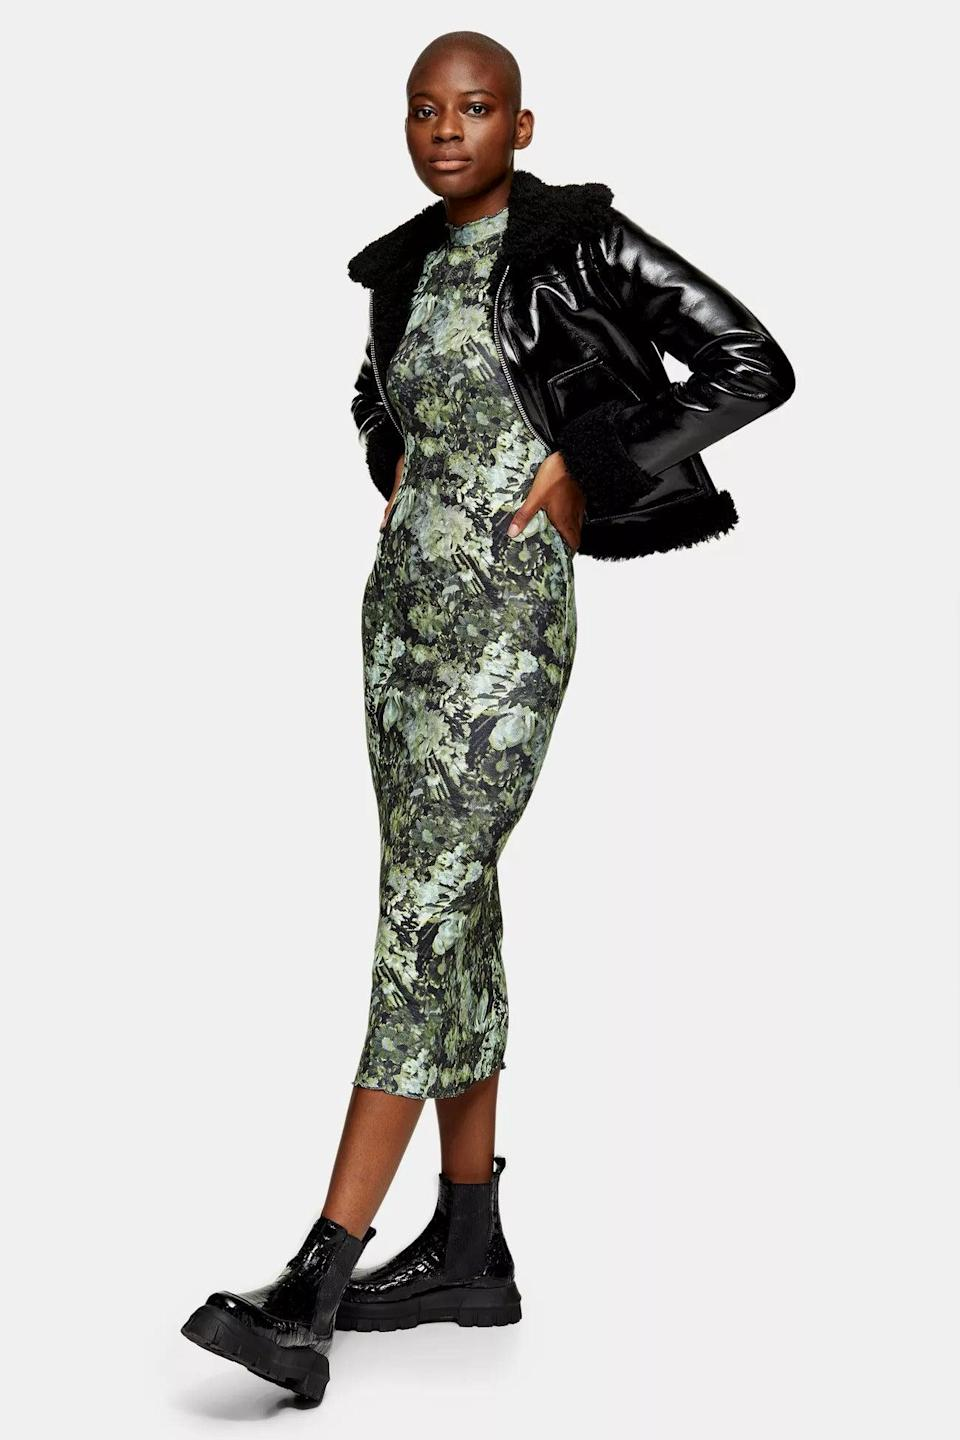 """<h2>Topshop Green Jersey Midi Dress<br></h2><br>This one-and-done bodycon dress gets is our winning pick from reader-favorite retailer Topshop — it's a throw-on-and-go piece that will look festive with heels and cool with flats. We're suckers for the decidedly dramatic, Belgian-influenced floral print, with the dark, moody color scheme of an Old Master painting. <br><br><strong>Topshop</strong> Green Jersey Midi Dress, $, available at <a href=""""https://go.skimresources.com/?id=30283X879131&url=https%3A%2F%2Fus.topshop.com%2Fen%2Ftsus%2Fproduct%2Fnew-in-this-week-2169940%2Fnew-in-dresses-4938916%2Fglitch-jersey-midi-10083041"""" rel=""""nofollow noopener"""" target=""""_blank"""" data-ylk=""""slk:Topshop"""" class=""""link rapid-noclick-resp"""">Topshop</a>"""